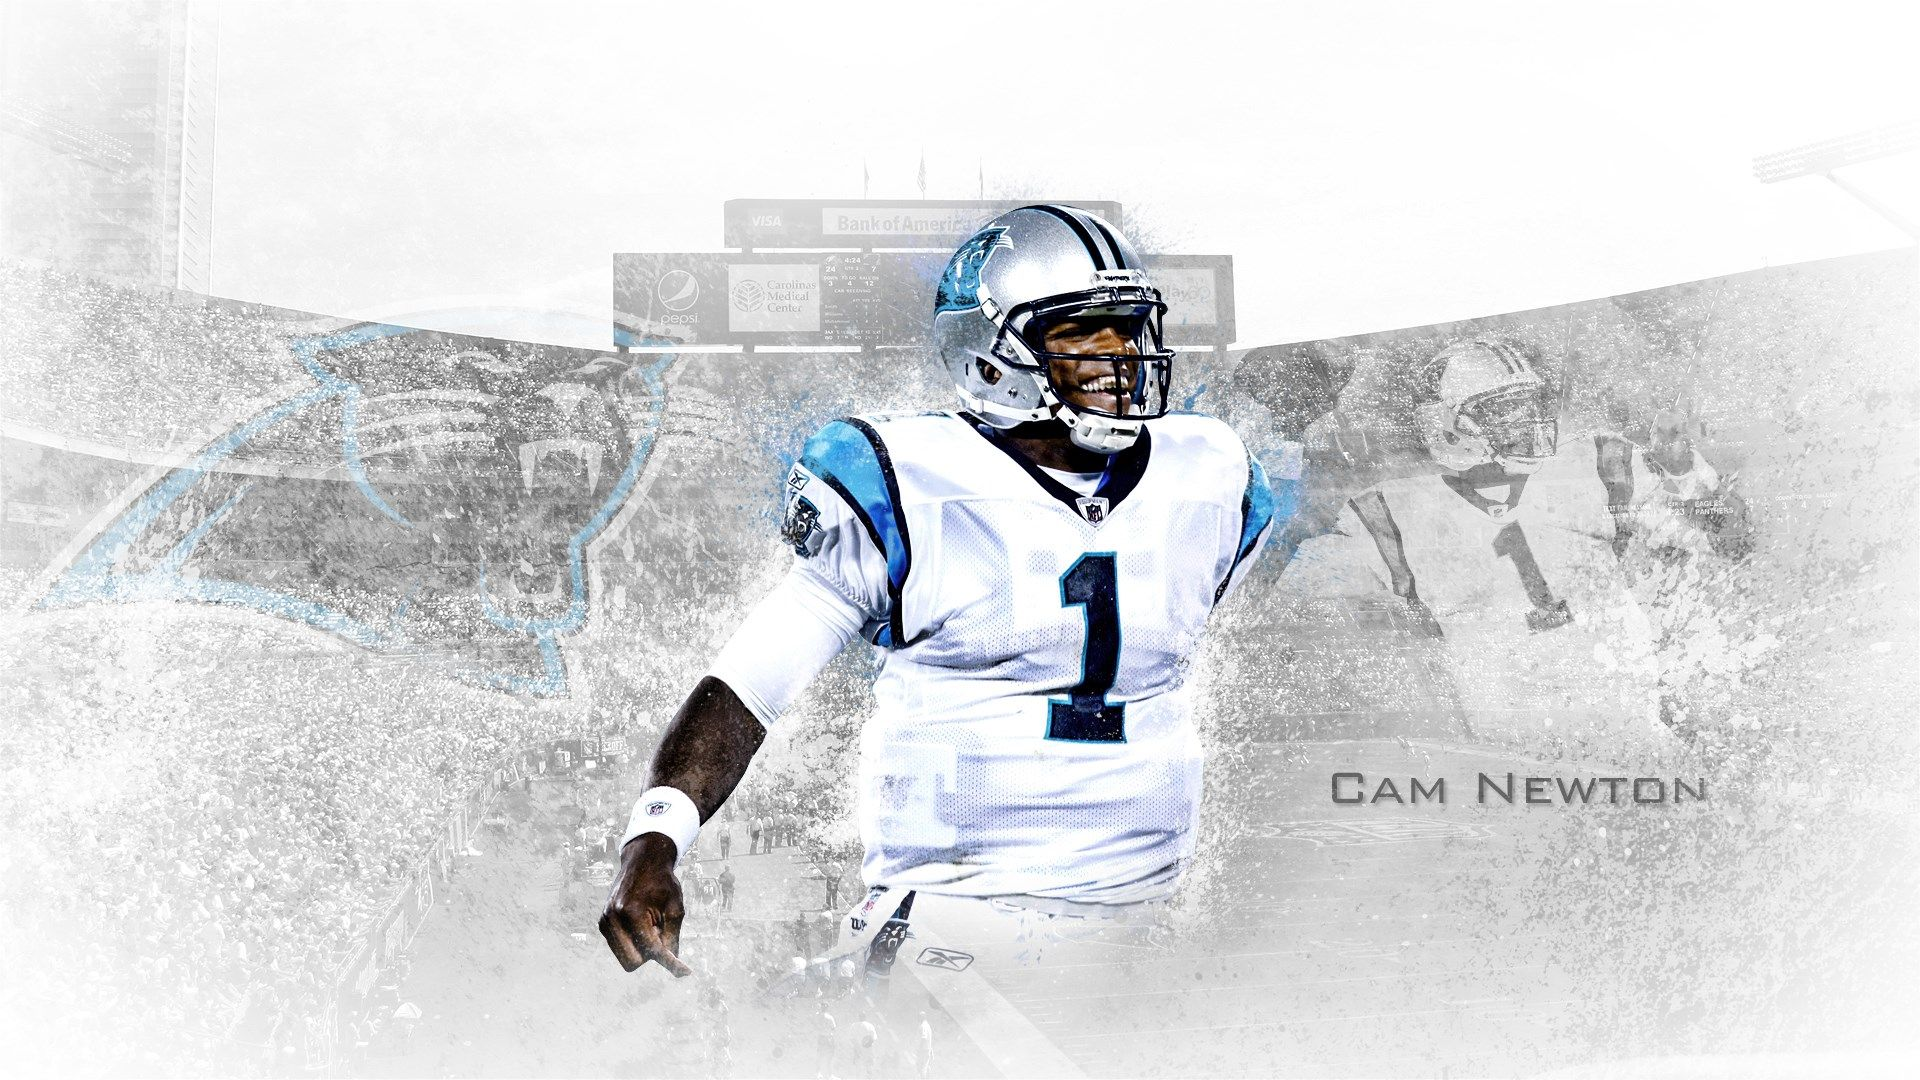 cam newton pic for mac computers (Pace Jacobson 1920x1080